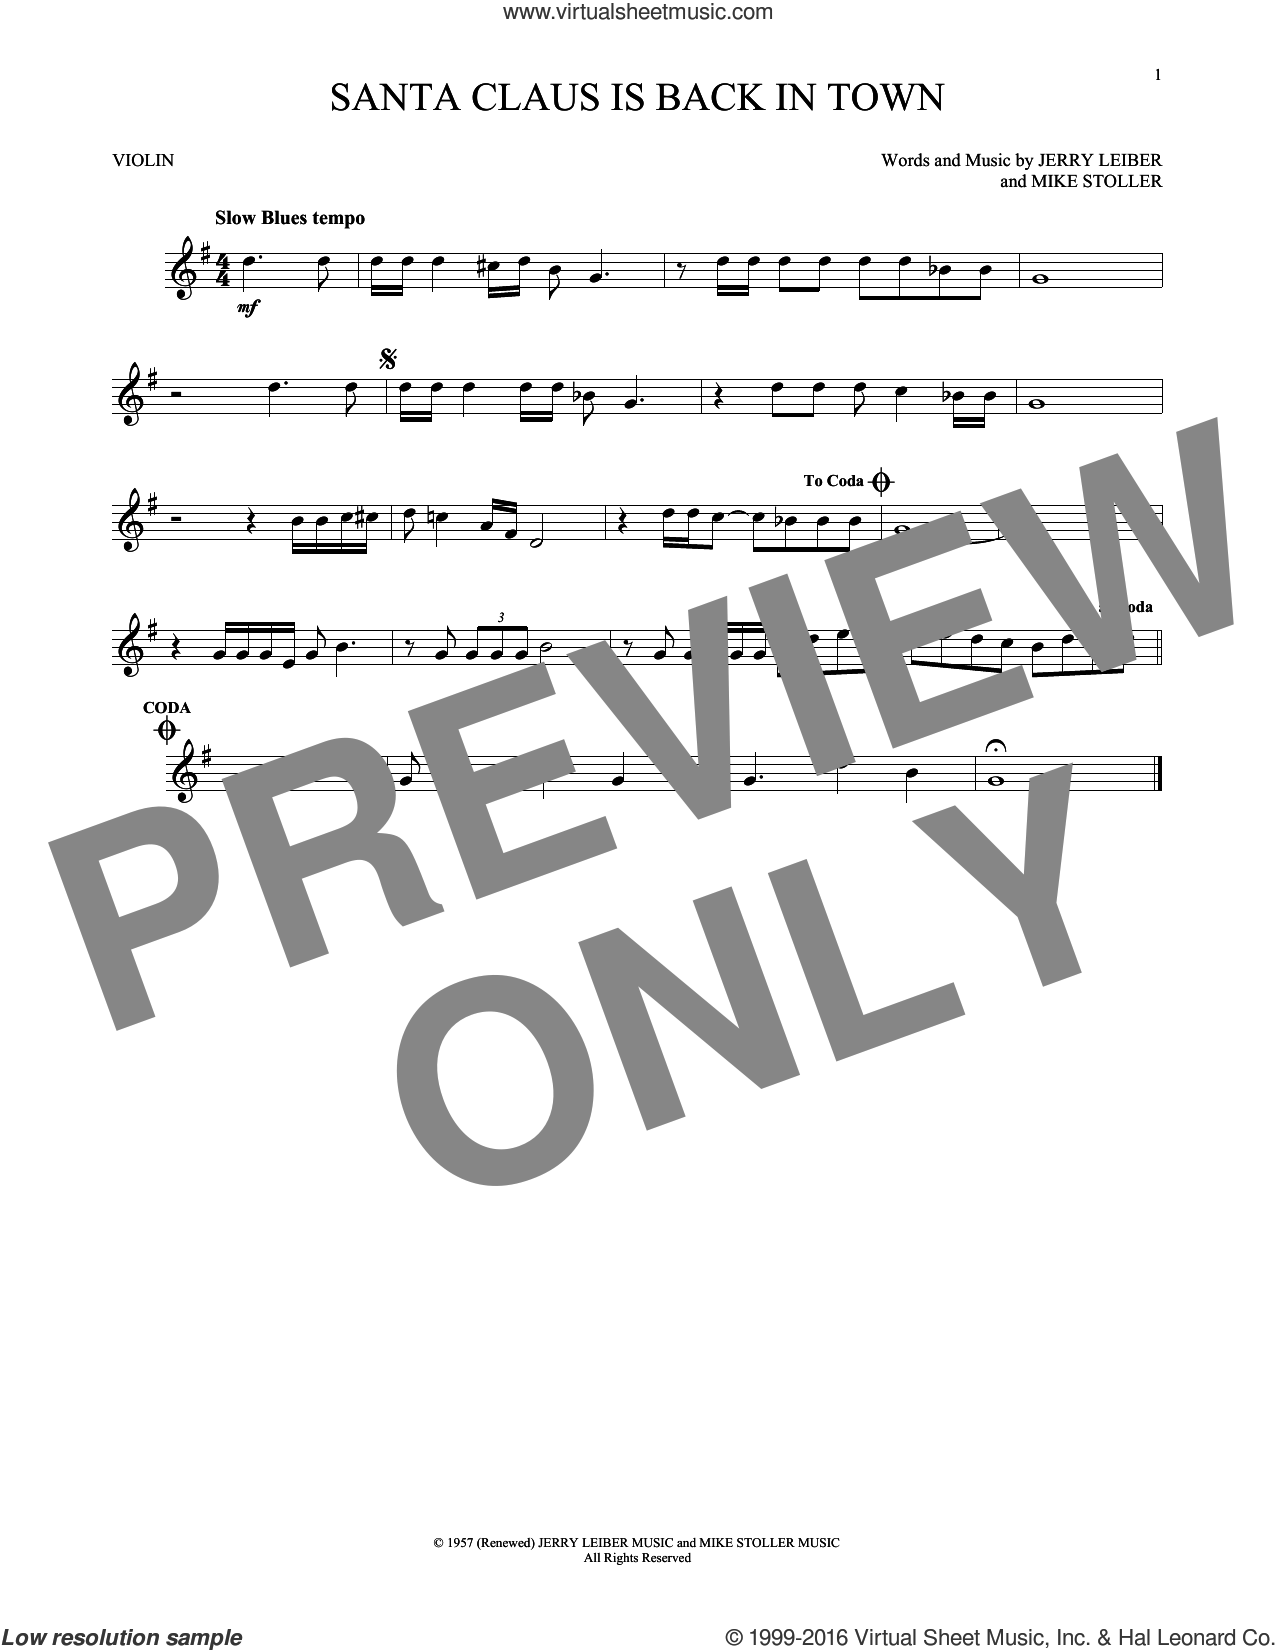 Santa Claus Is Back In Town sheet music for violin solo by Elvis Presley, Jerry Leiber and Mike Stoller, intermediate